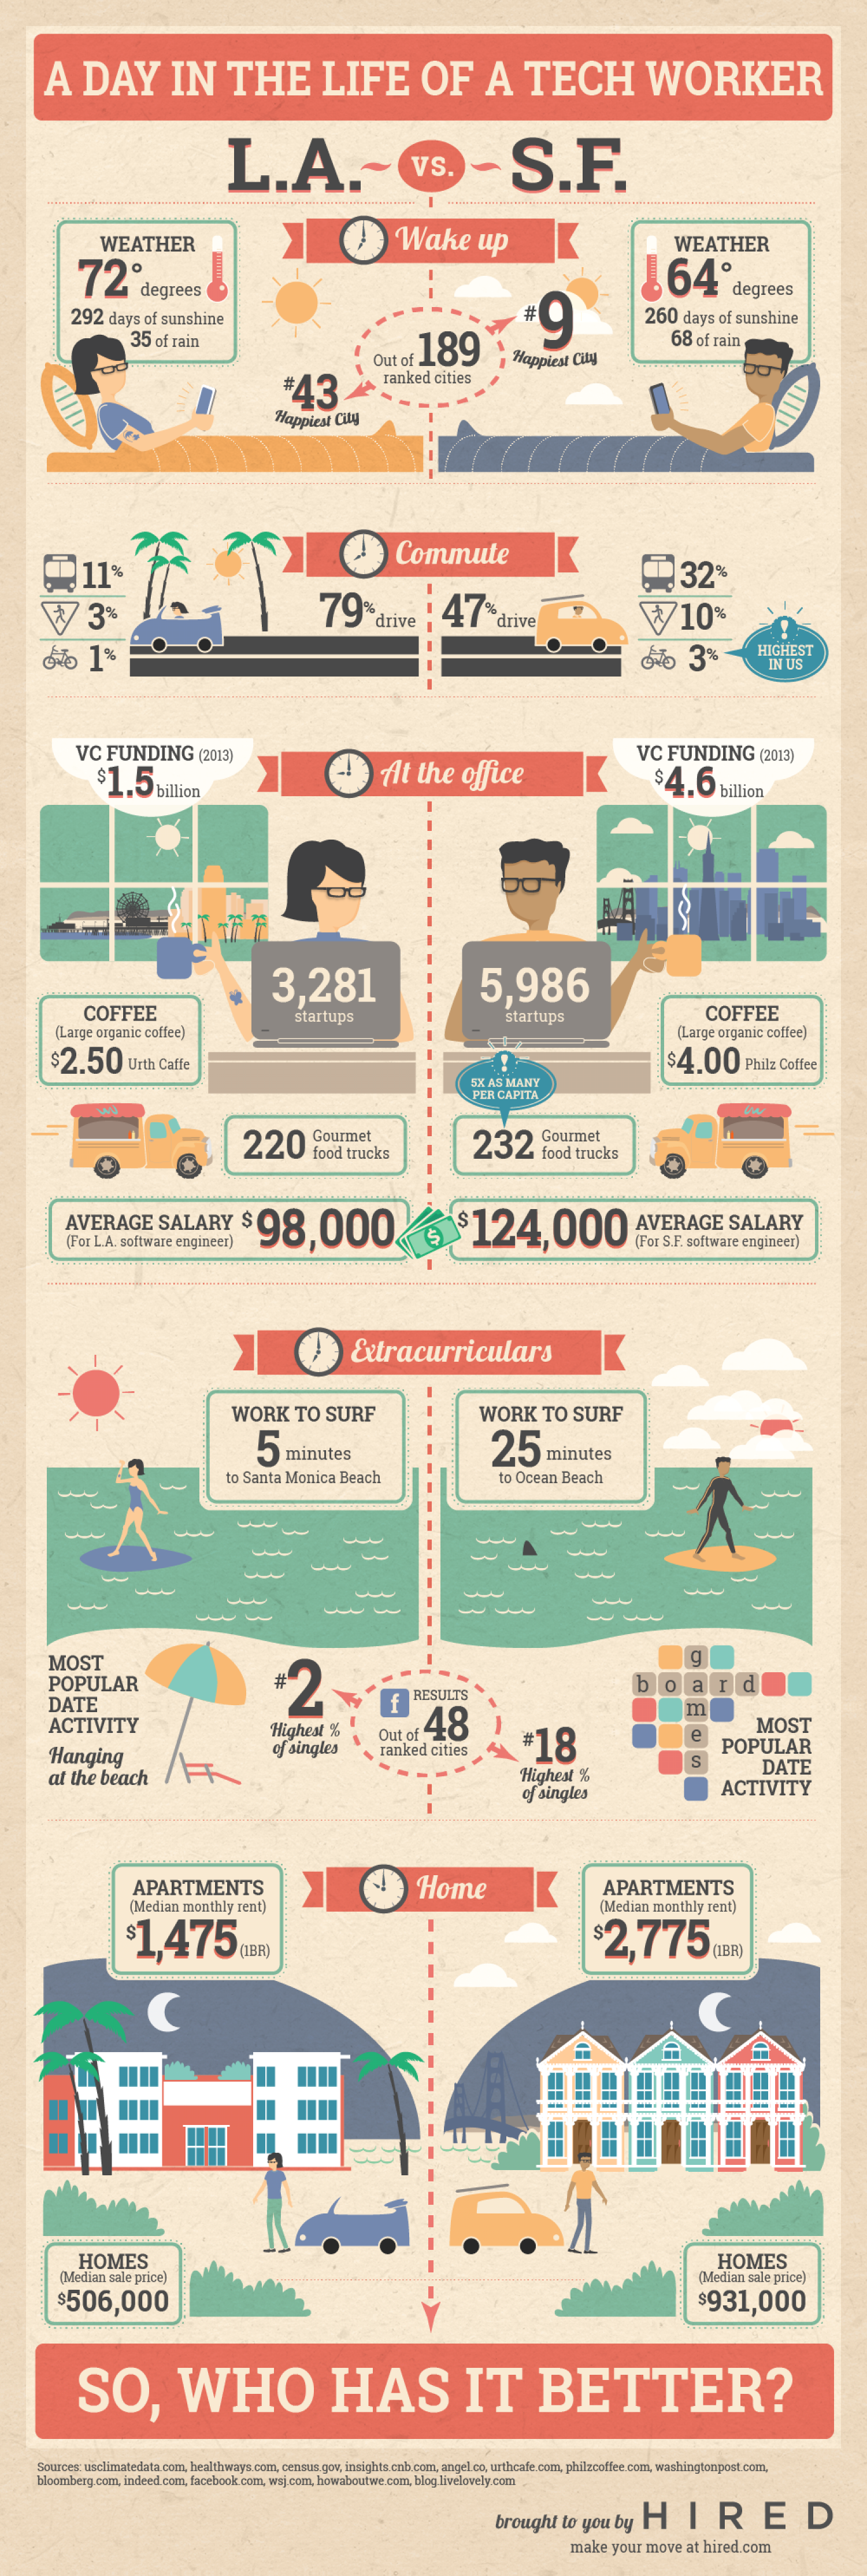 A Day in the Life of a Tech Worker Infographic